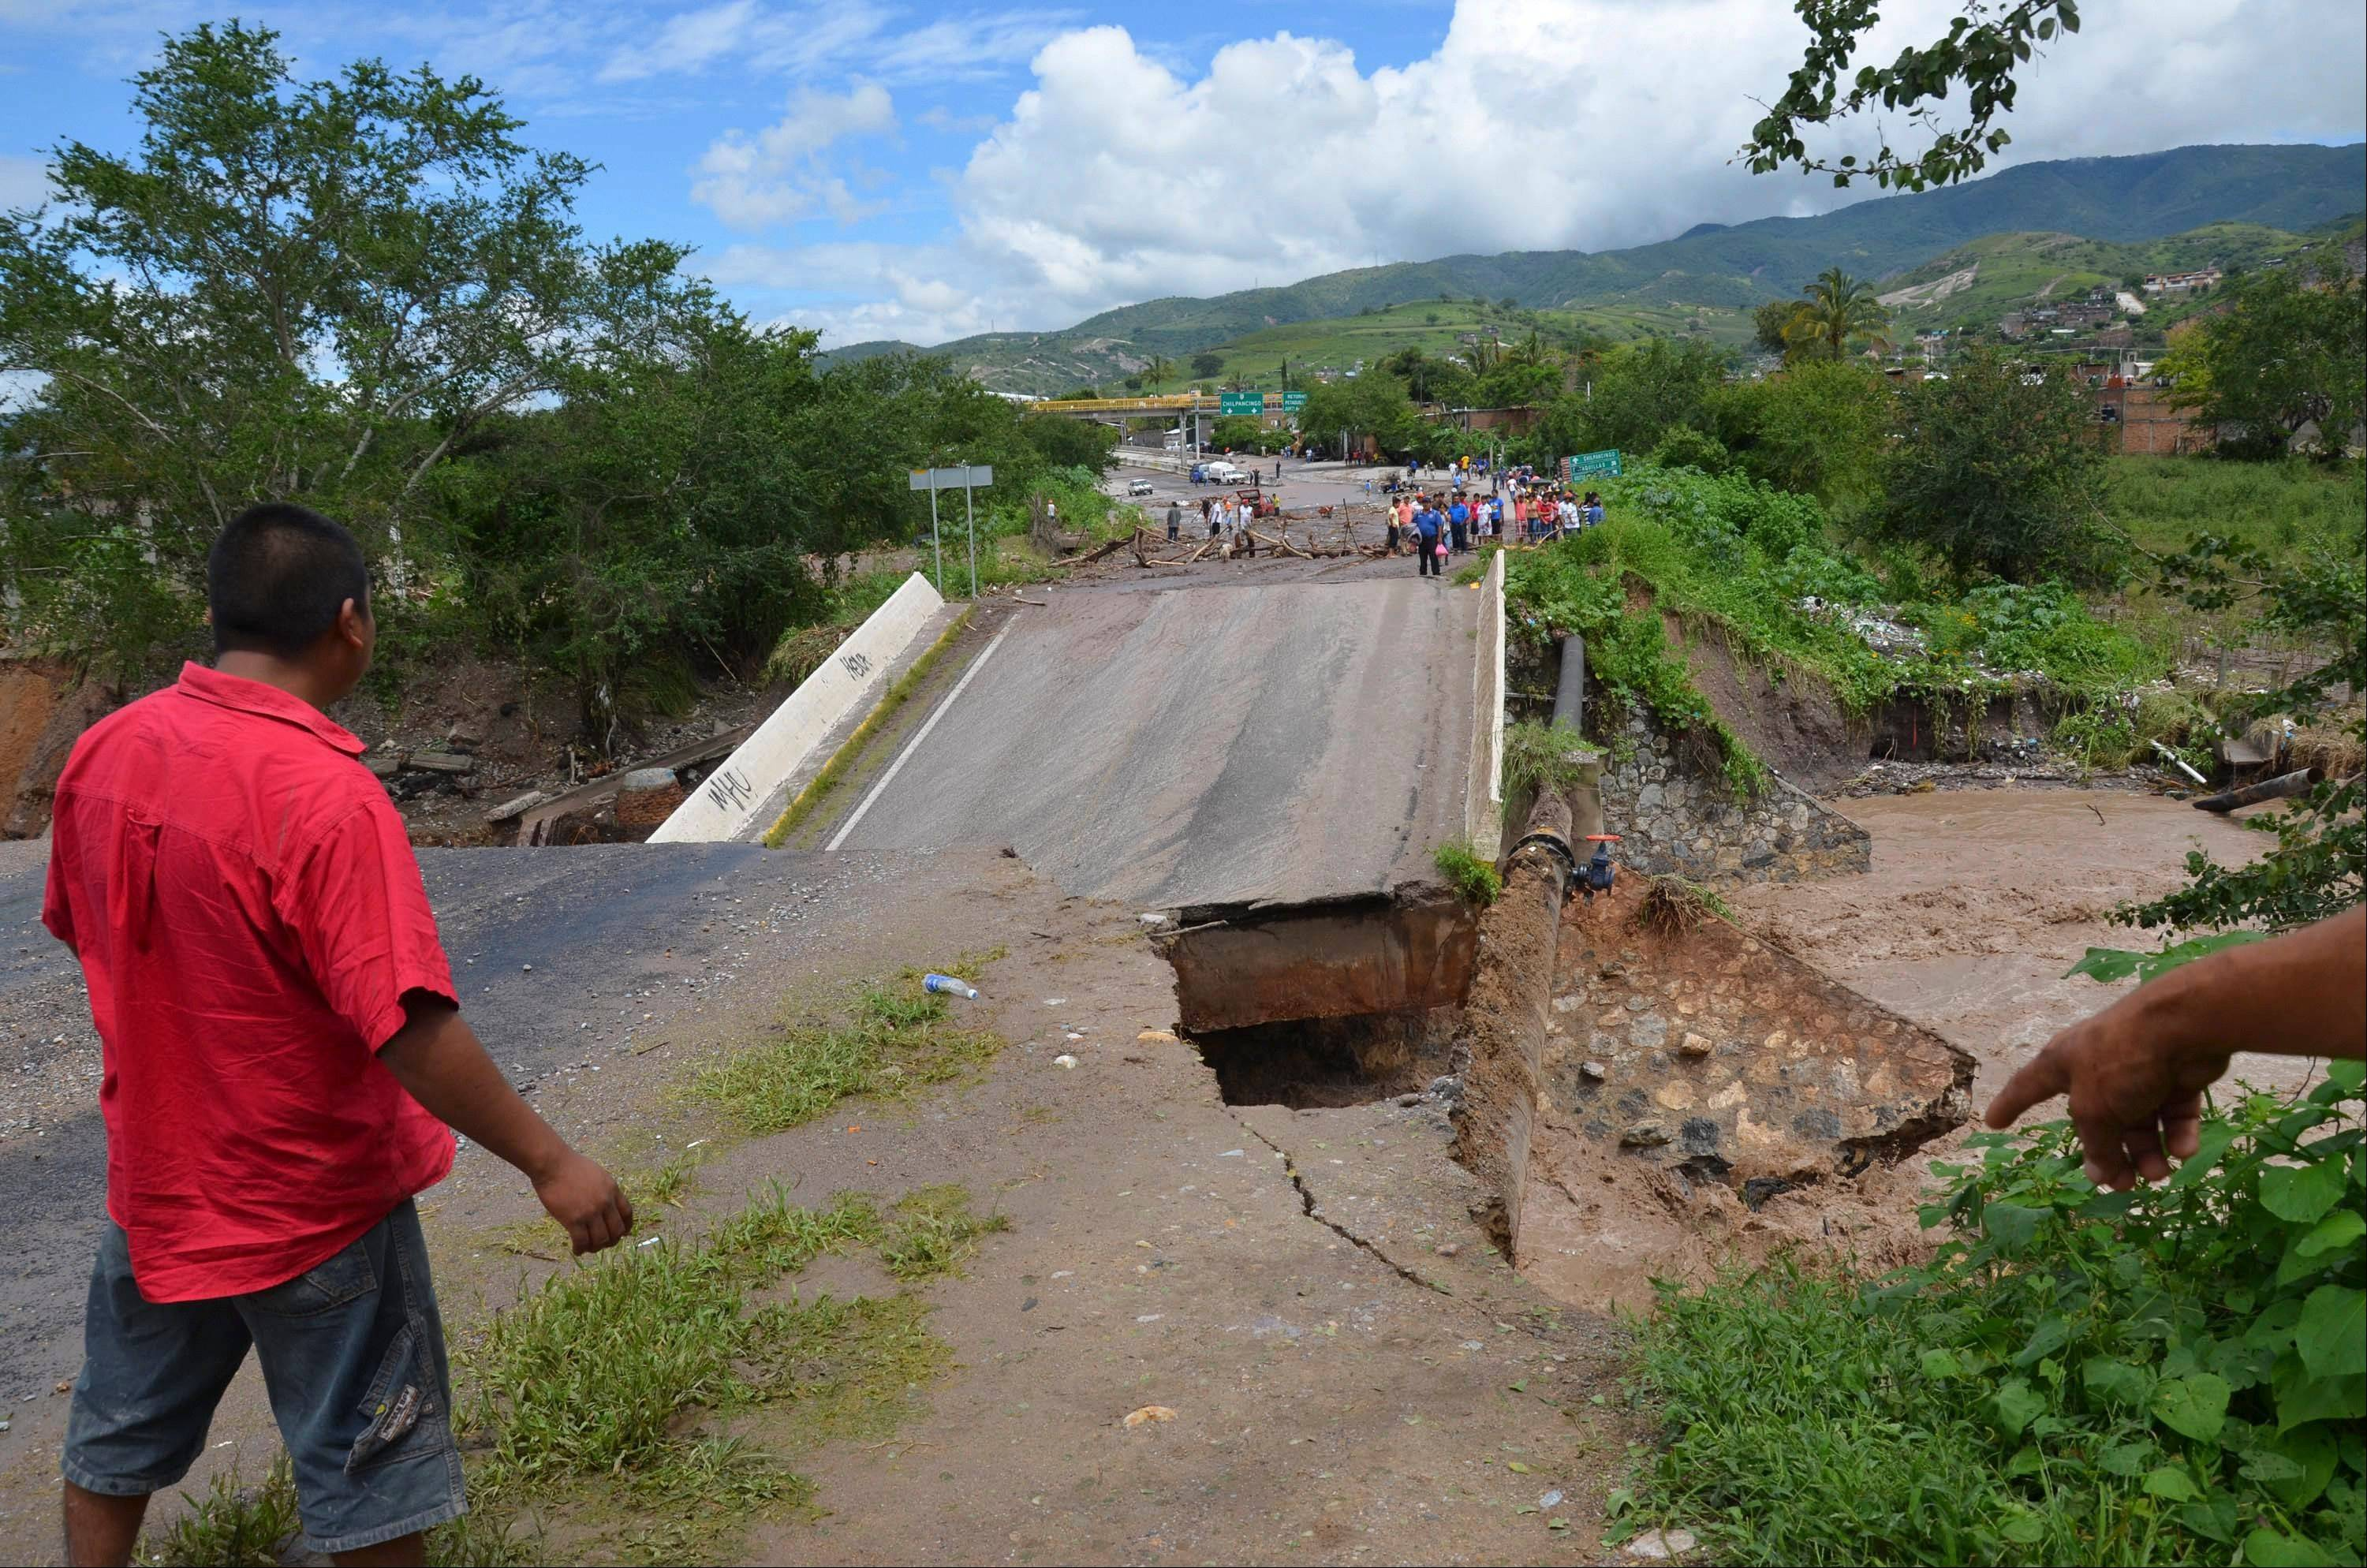 A man looks at a collapsed bridge over the Huacapa River near the town of Petaquillas, Mexico, Tuesday. Twin storms left scenes of havoc on both of Mexico's coasts on Tuesday, with tens of thousands of tourists stranded in resort city of Acapulco on the Pacific and heavy damage reported along the Gulf coast.